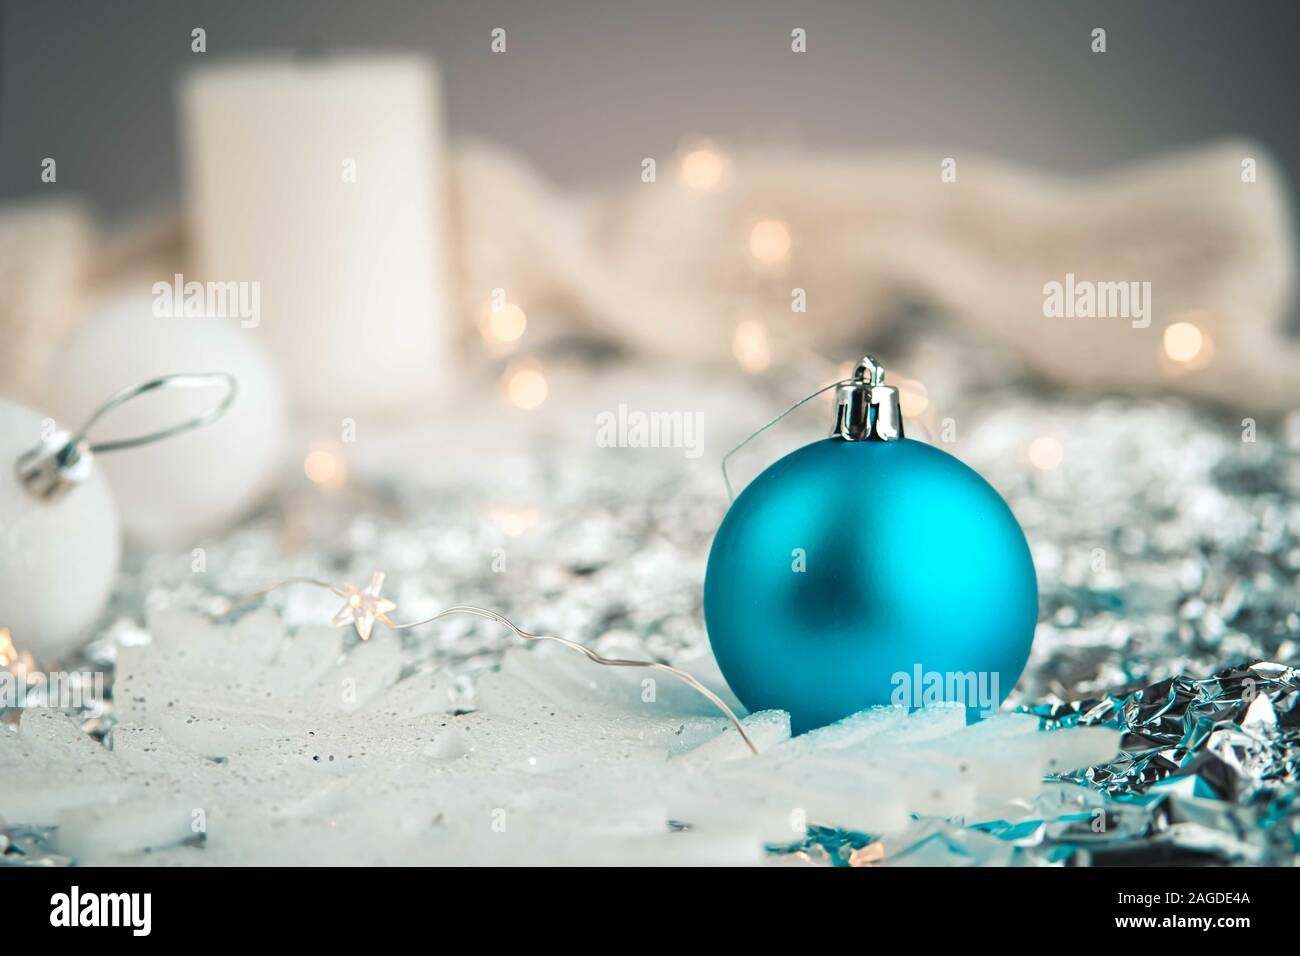 White And Blue Holiday Decorations On Silver Background Christmas Balls And Fairy Lights Color Of The Year Concept Stock Photo Alamy